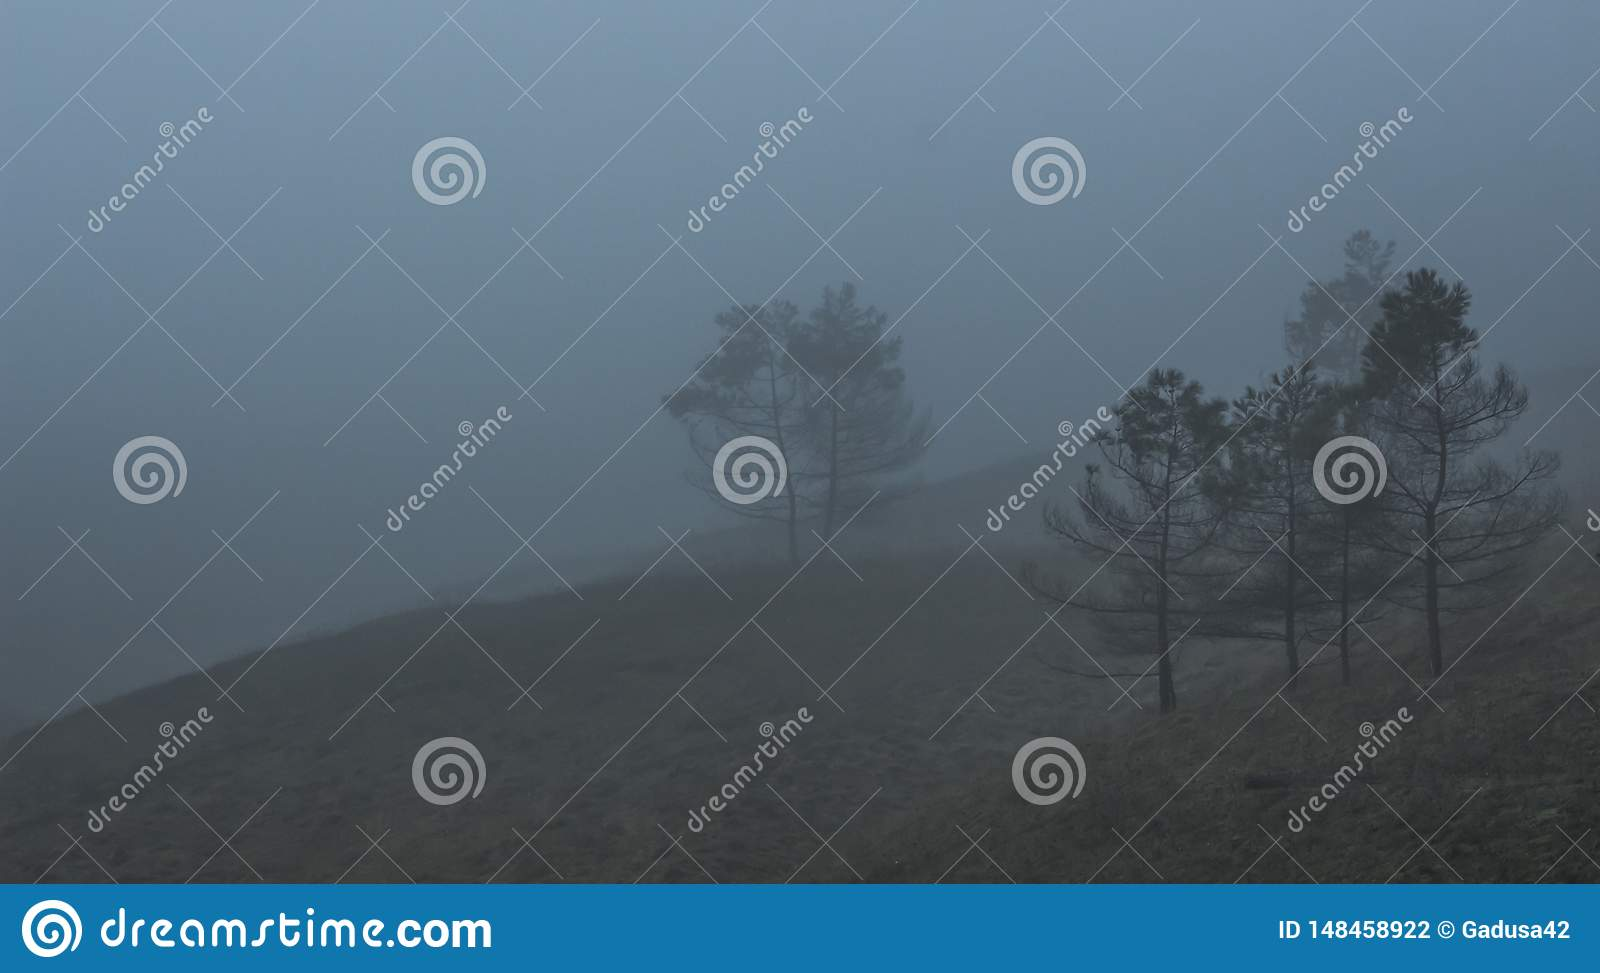 Coniferous trees in thick fog.